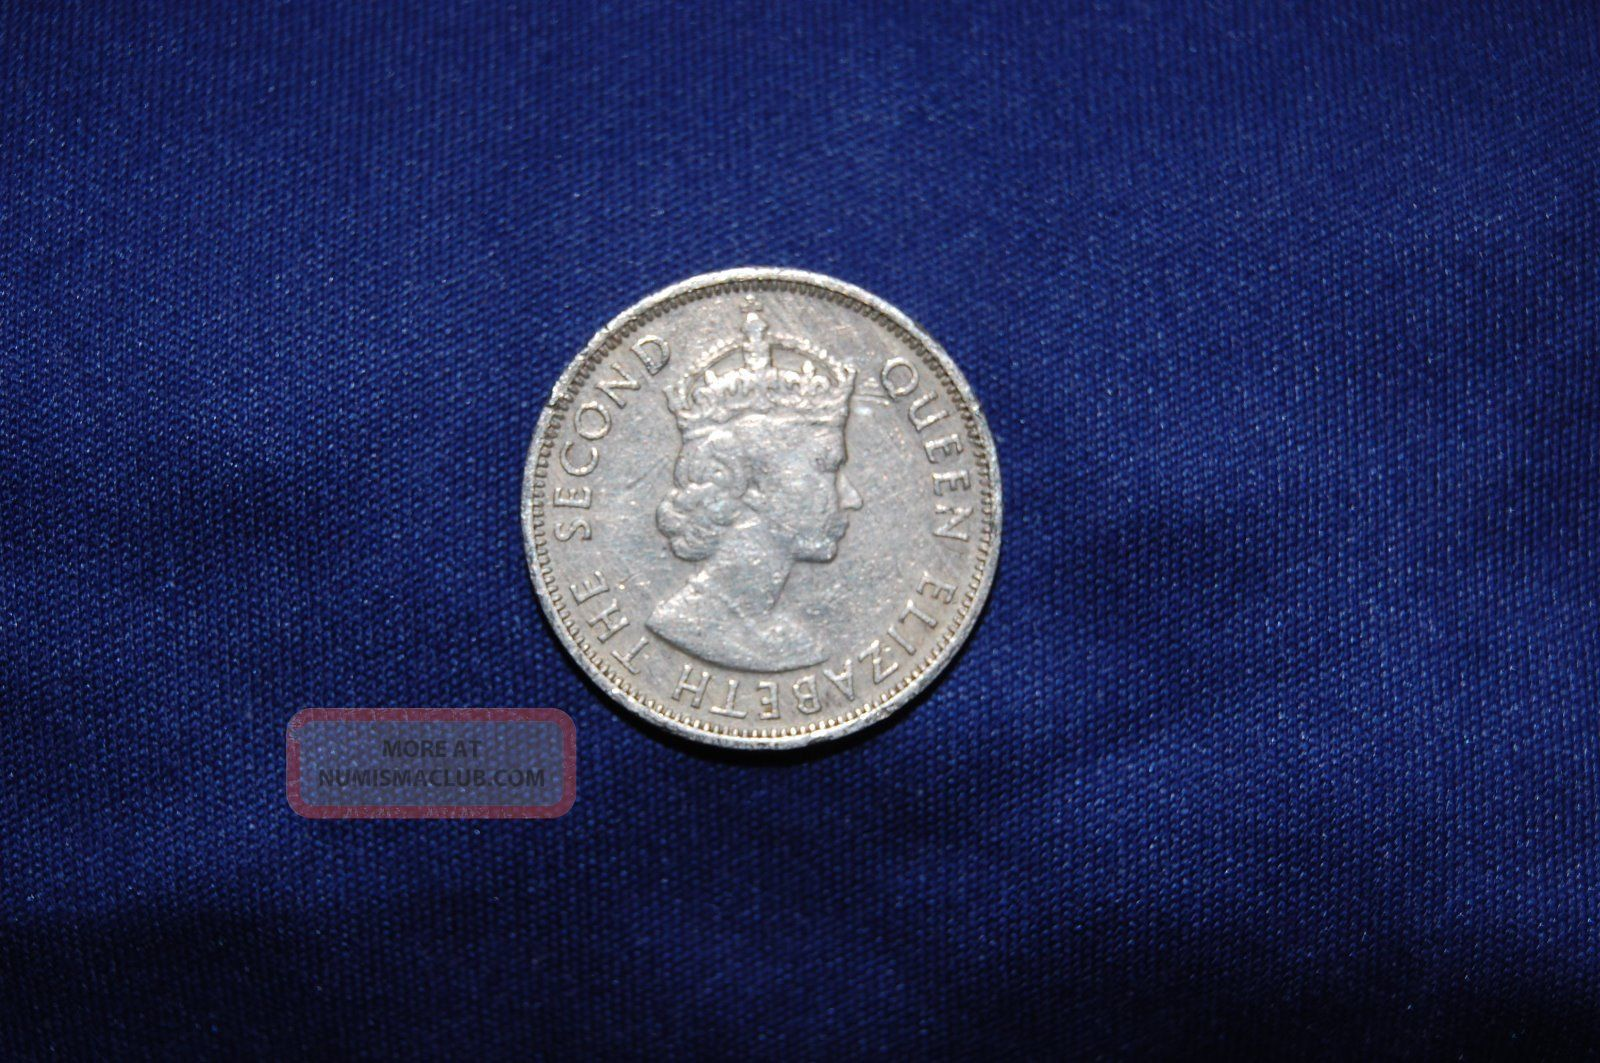 British West Africa 3 Pence, 1957 - H Queen Elizabeth The